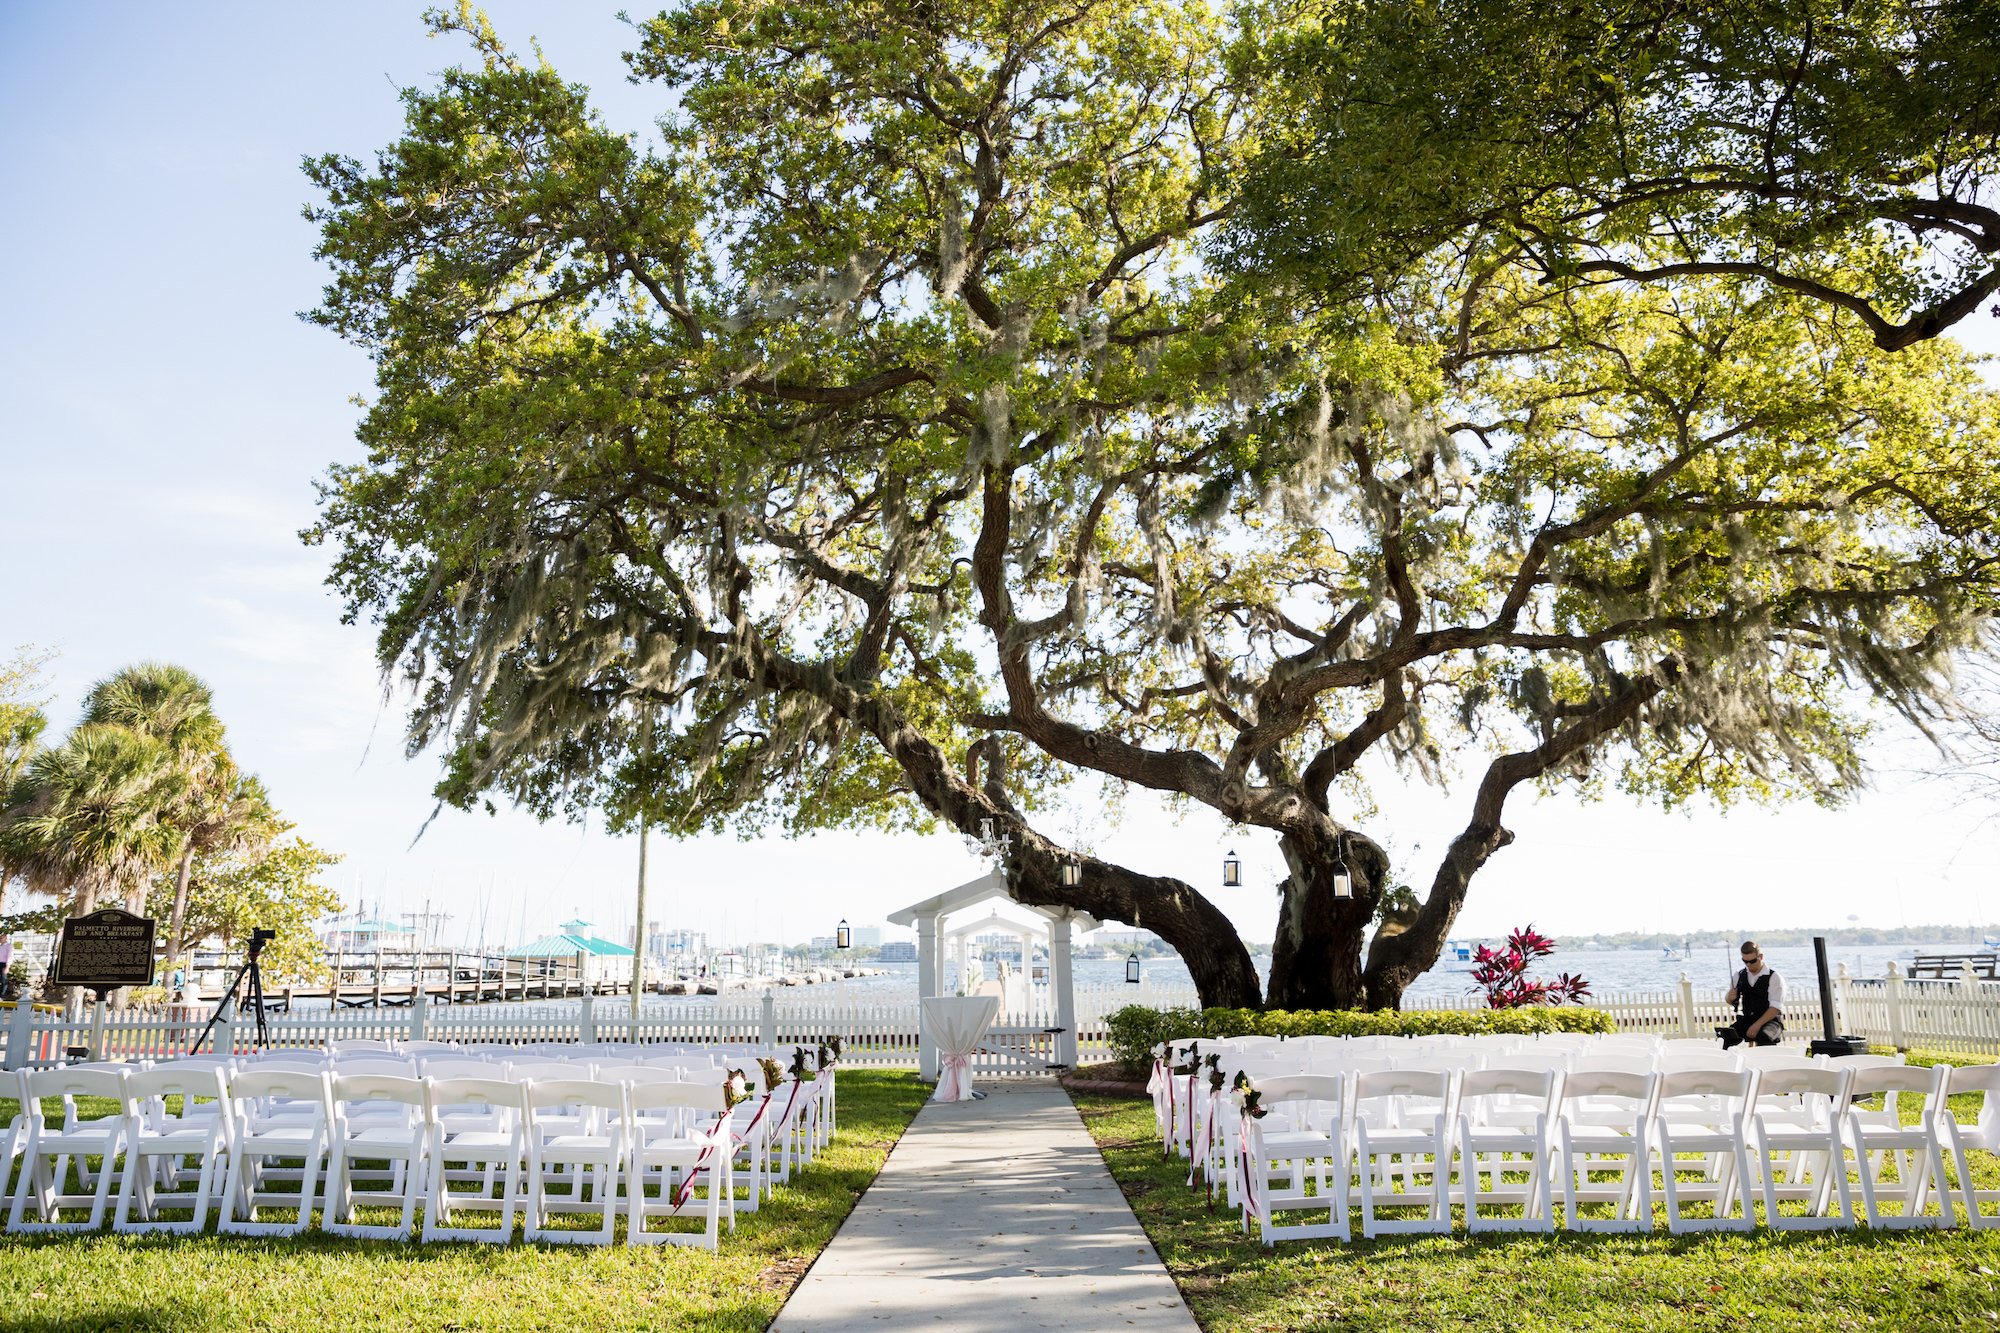 Simple Waterfront Wedding Ceremony Decor, White Folding Chairs and White Altar with Large Oak Tree and Lanterns   Tampa Wedding Venue Palmetto Riverside Bed and Breakfast   Sarasota Wedding Planner Coastal Coordinating